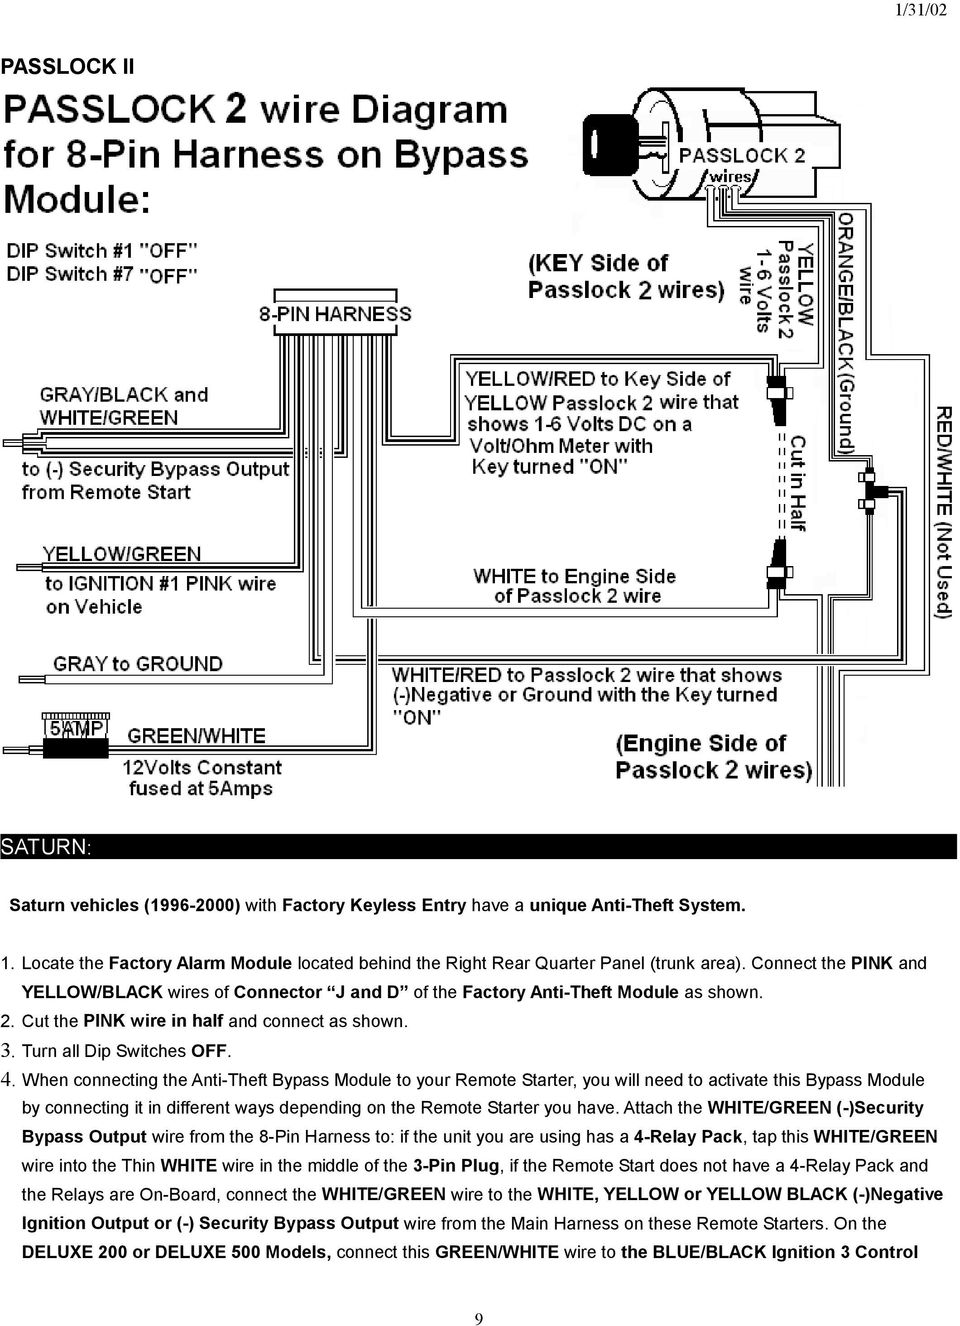 General Remote Starter Diagram Model If114 Vats Passlock Transponder Universal Alarm Bypass Module When Connecting The Anti Theft To Your You Will Need